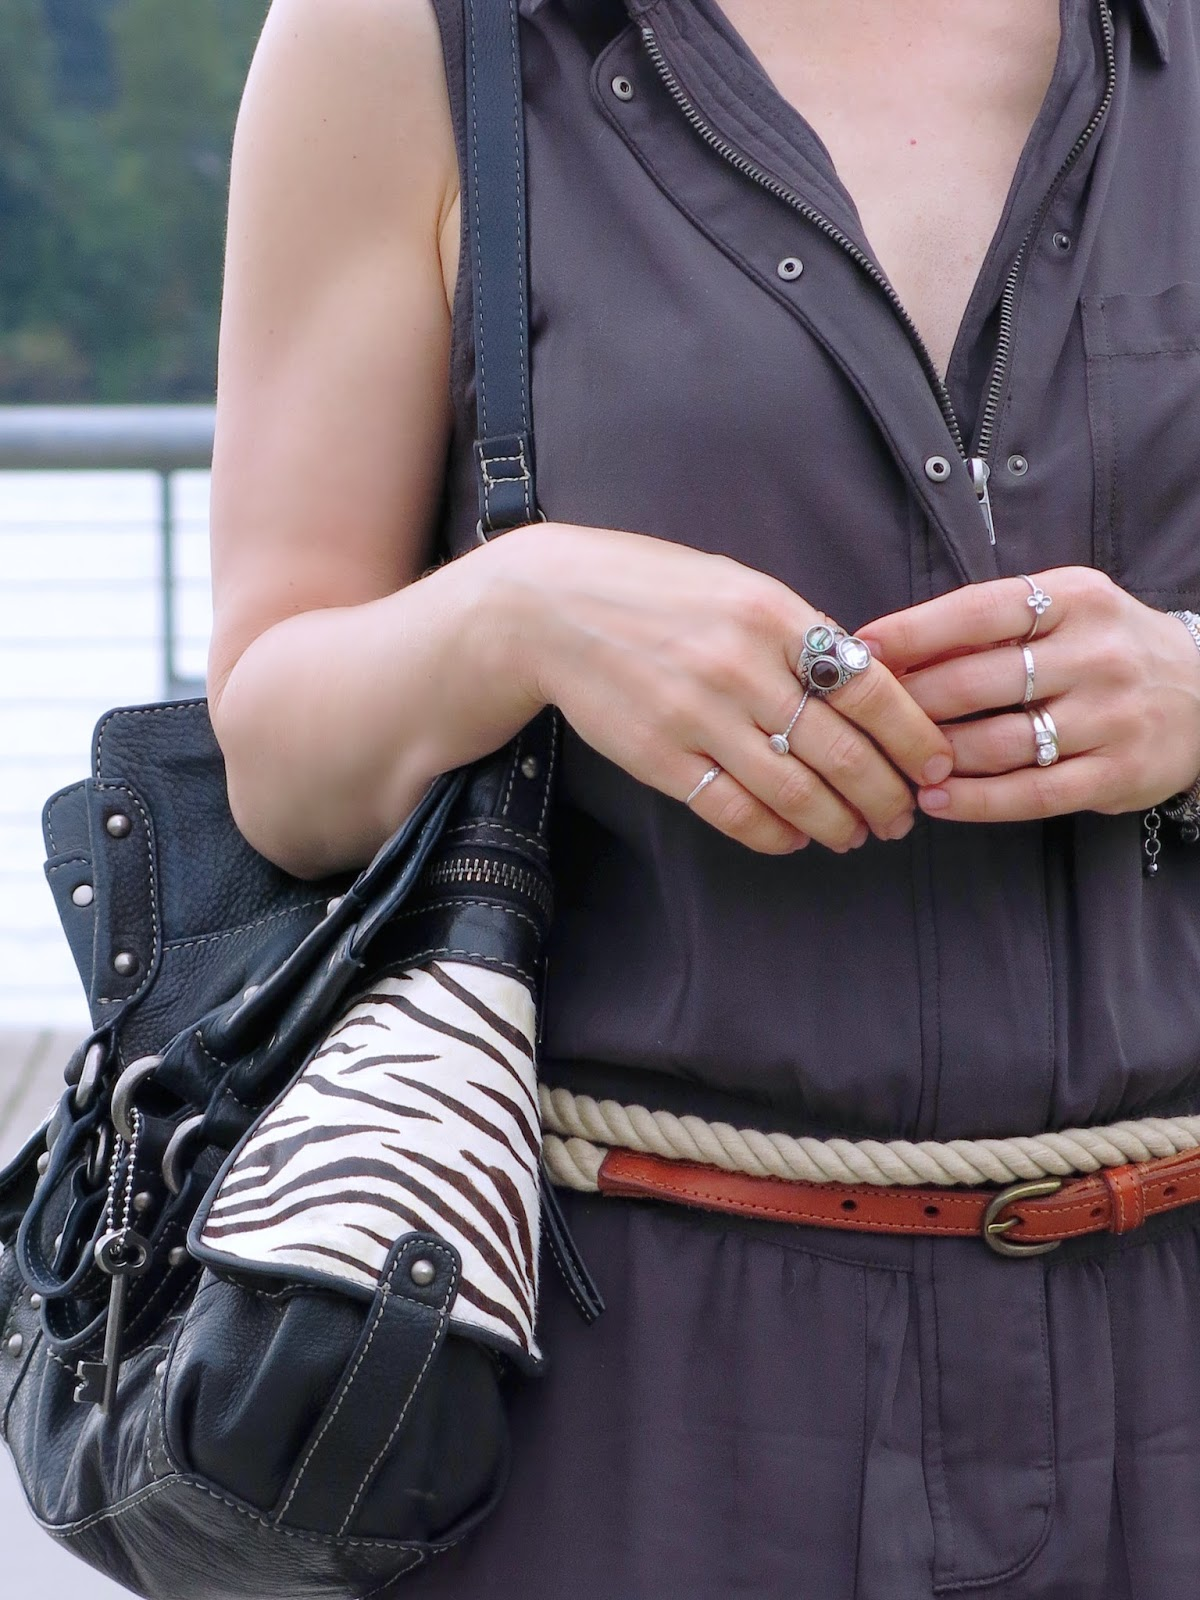 a utility-style jumpsuit, zebra-striped Fossil bag, and accessories